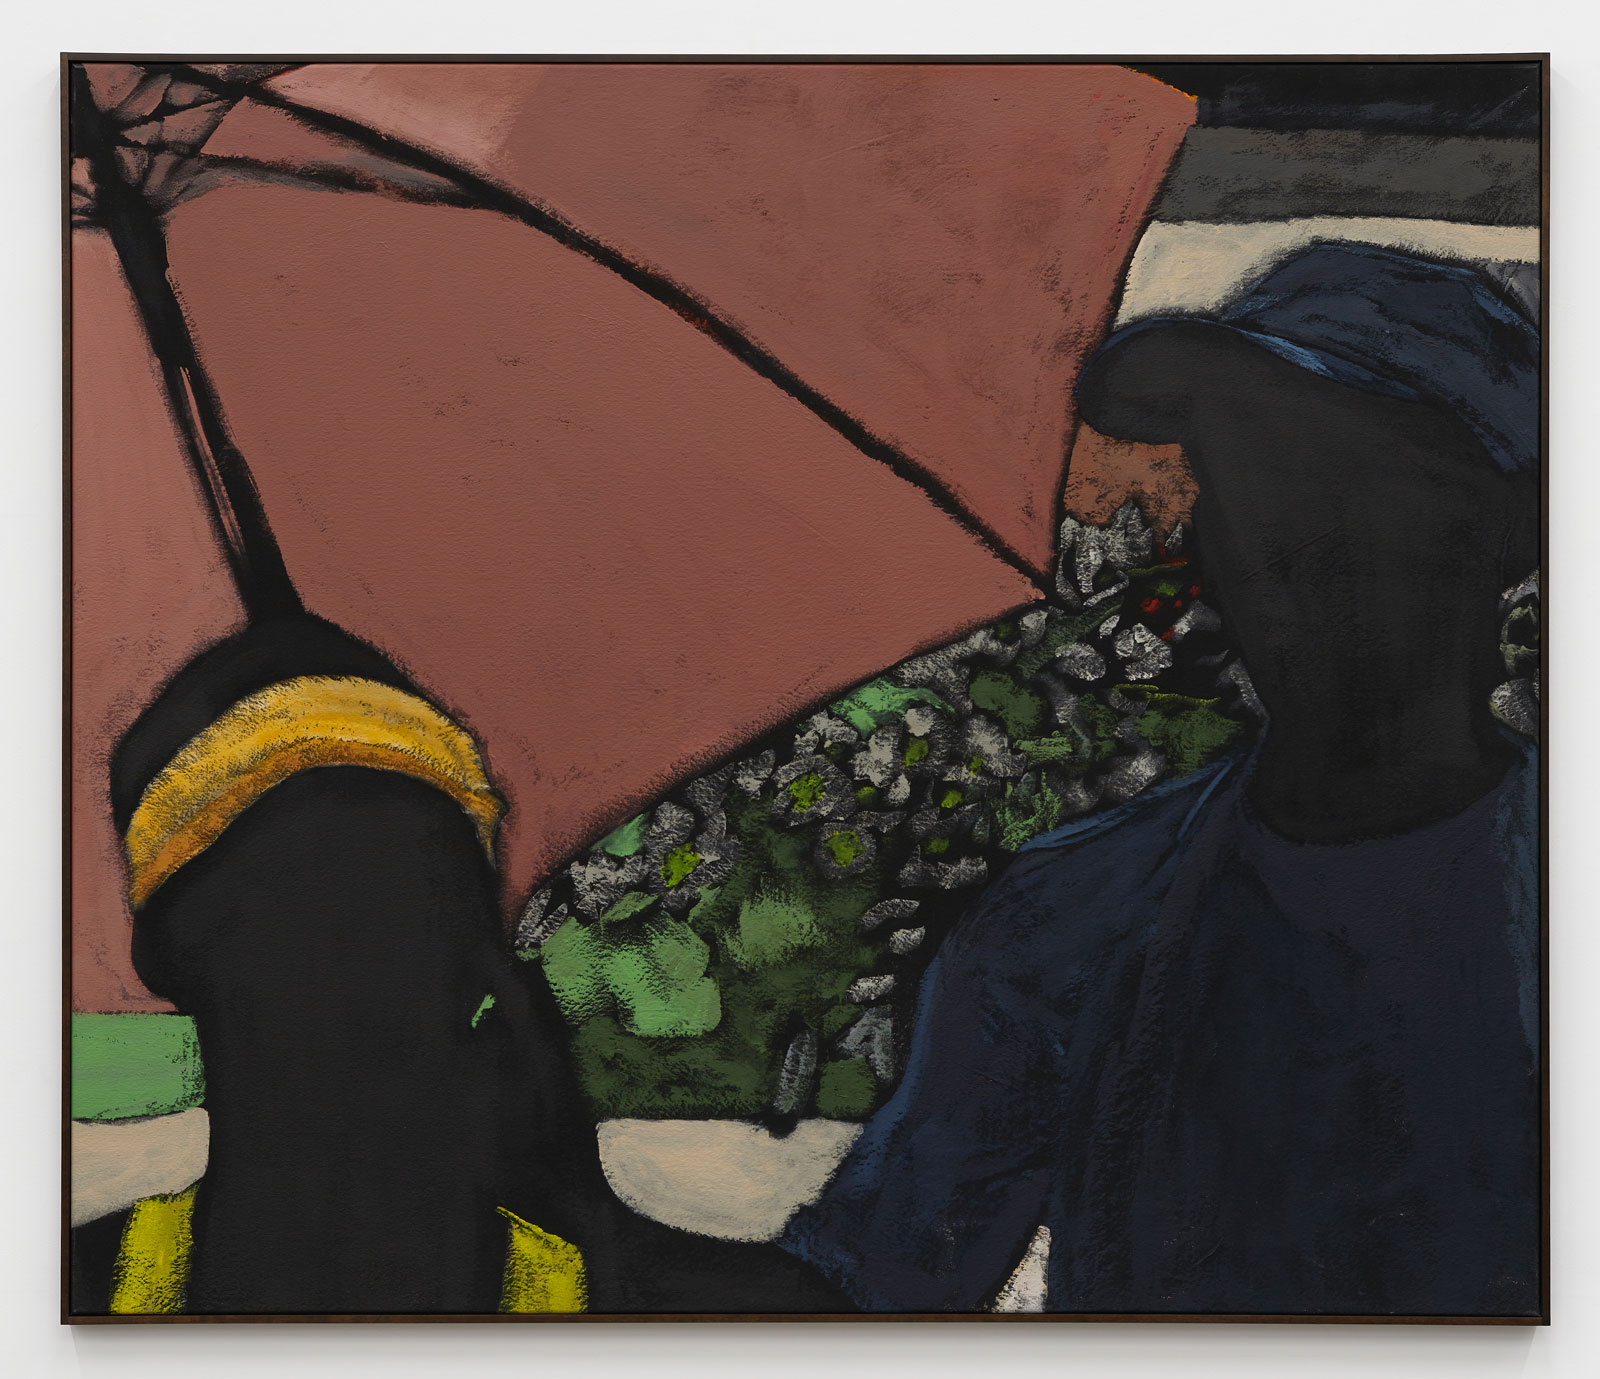 Two black male figures standing under a pink umbrella, one with a yellow sweatband, the other with a blue hat and t-shirt